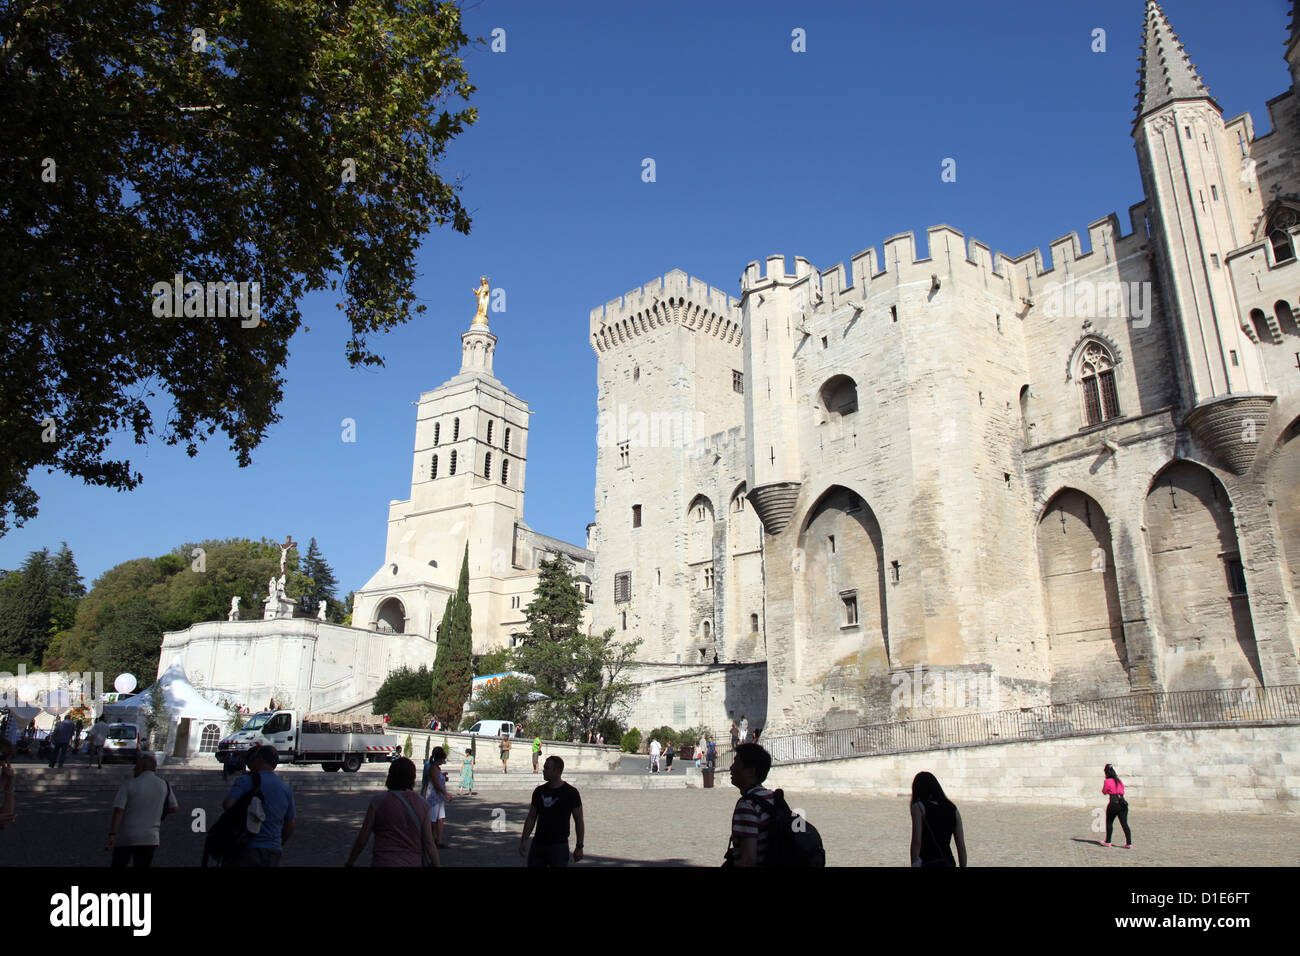 Exterior of Palais des Papes, UNESCO World Heritage Site, and church, Avignon, Vaucluse, Provence, France, Europe - Stock Image